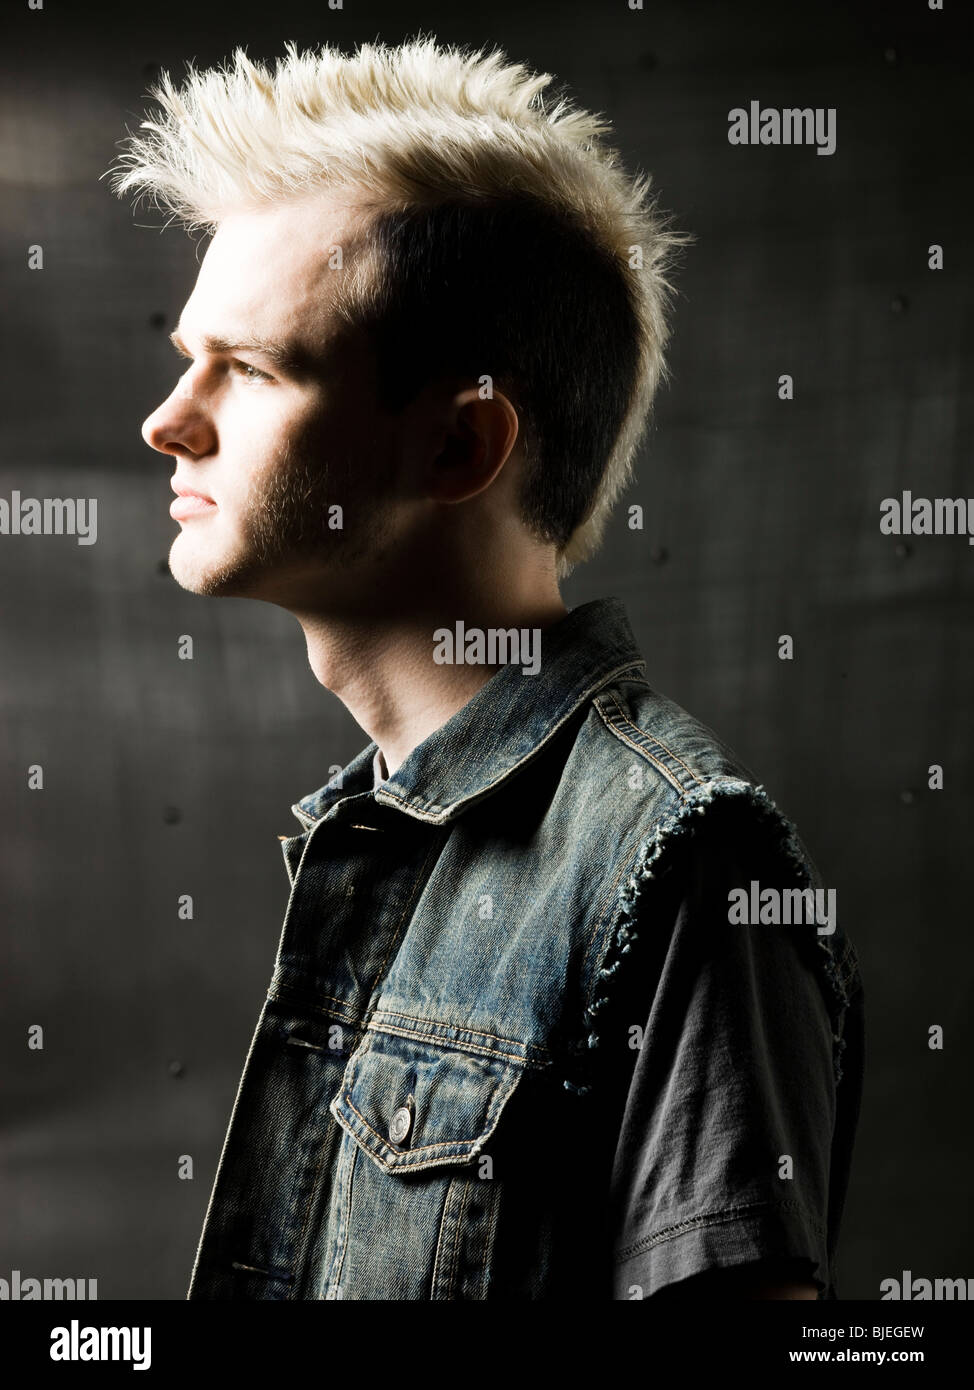 man with a mohawk - Stock Image